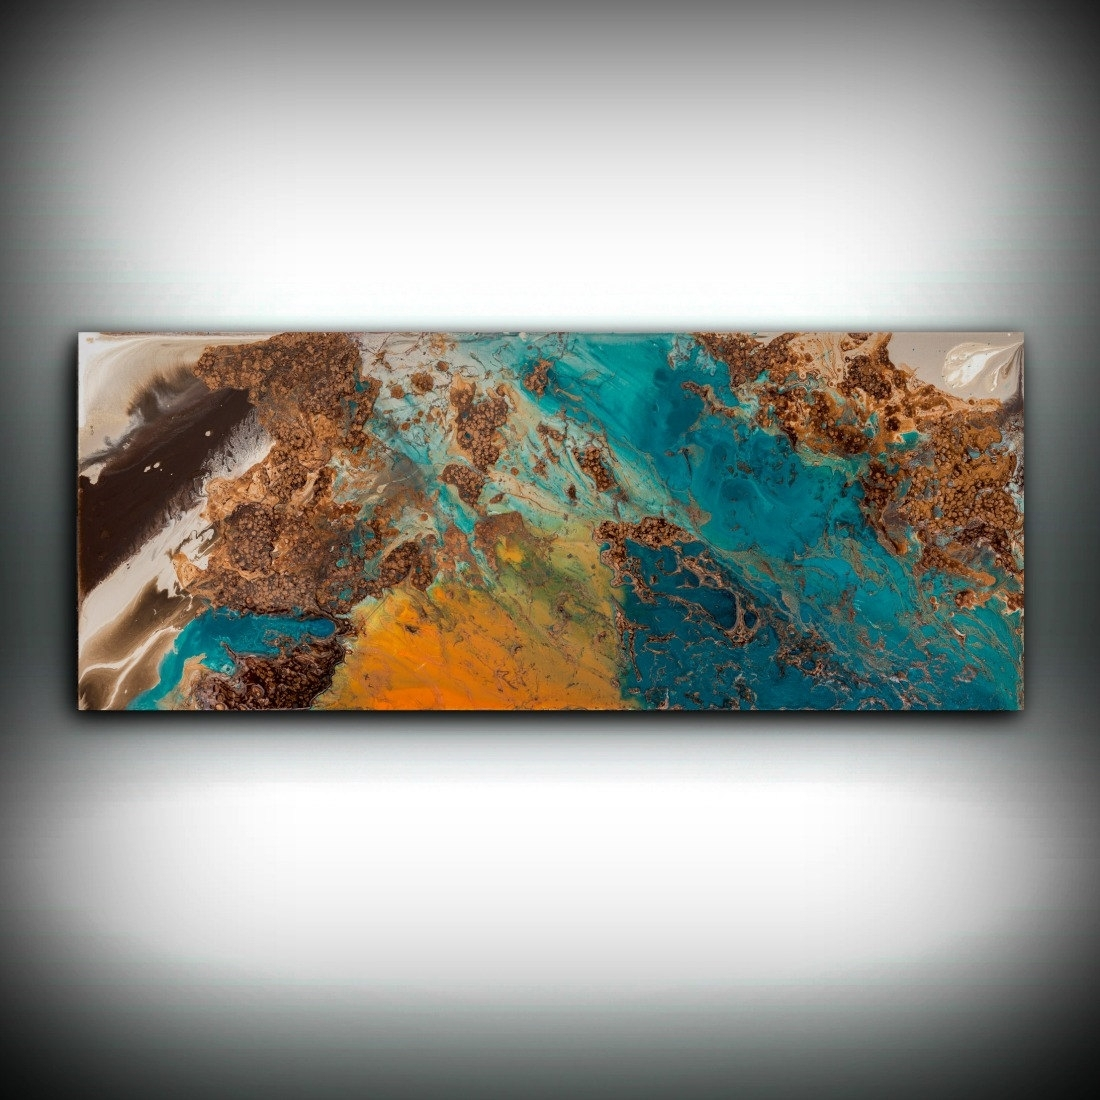 Sale Blue And Copper Art, Wall Art Prints Fine Art Prints Abstract With Regard To Most Up To Date Blue And Brown Canvas Wall Art (View 11 of 15)